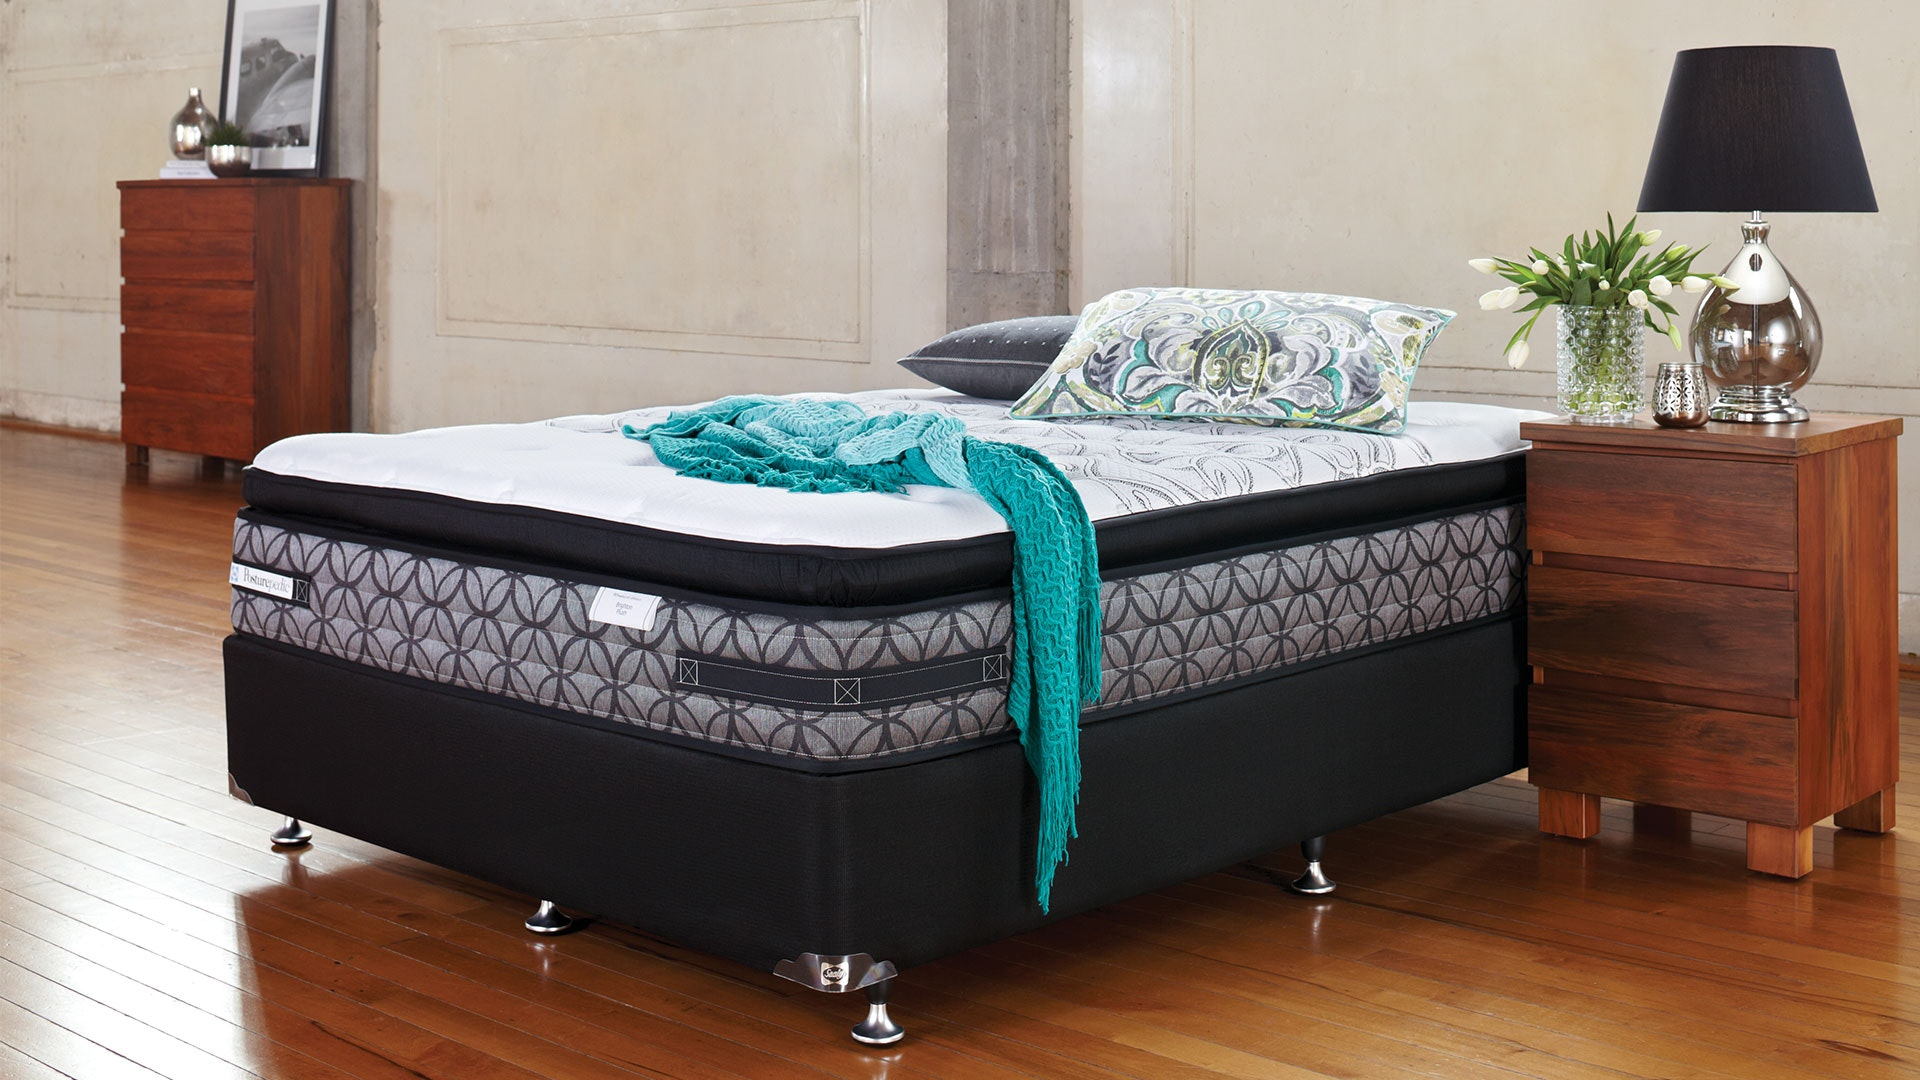 Brighton Plush Queen Bed by Sealy Posturepedic